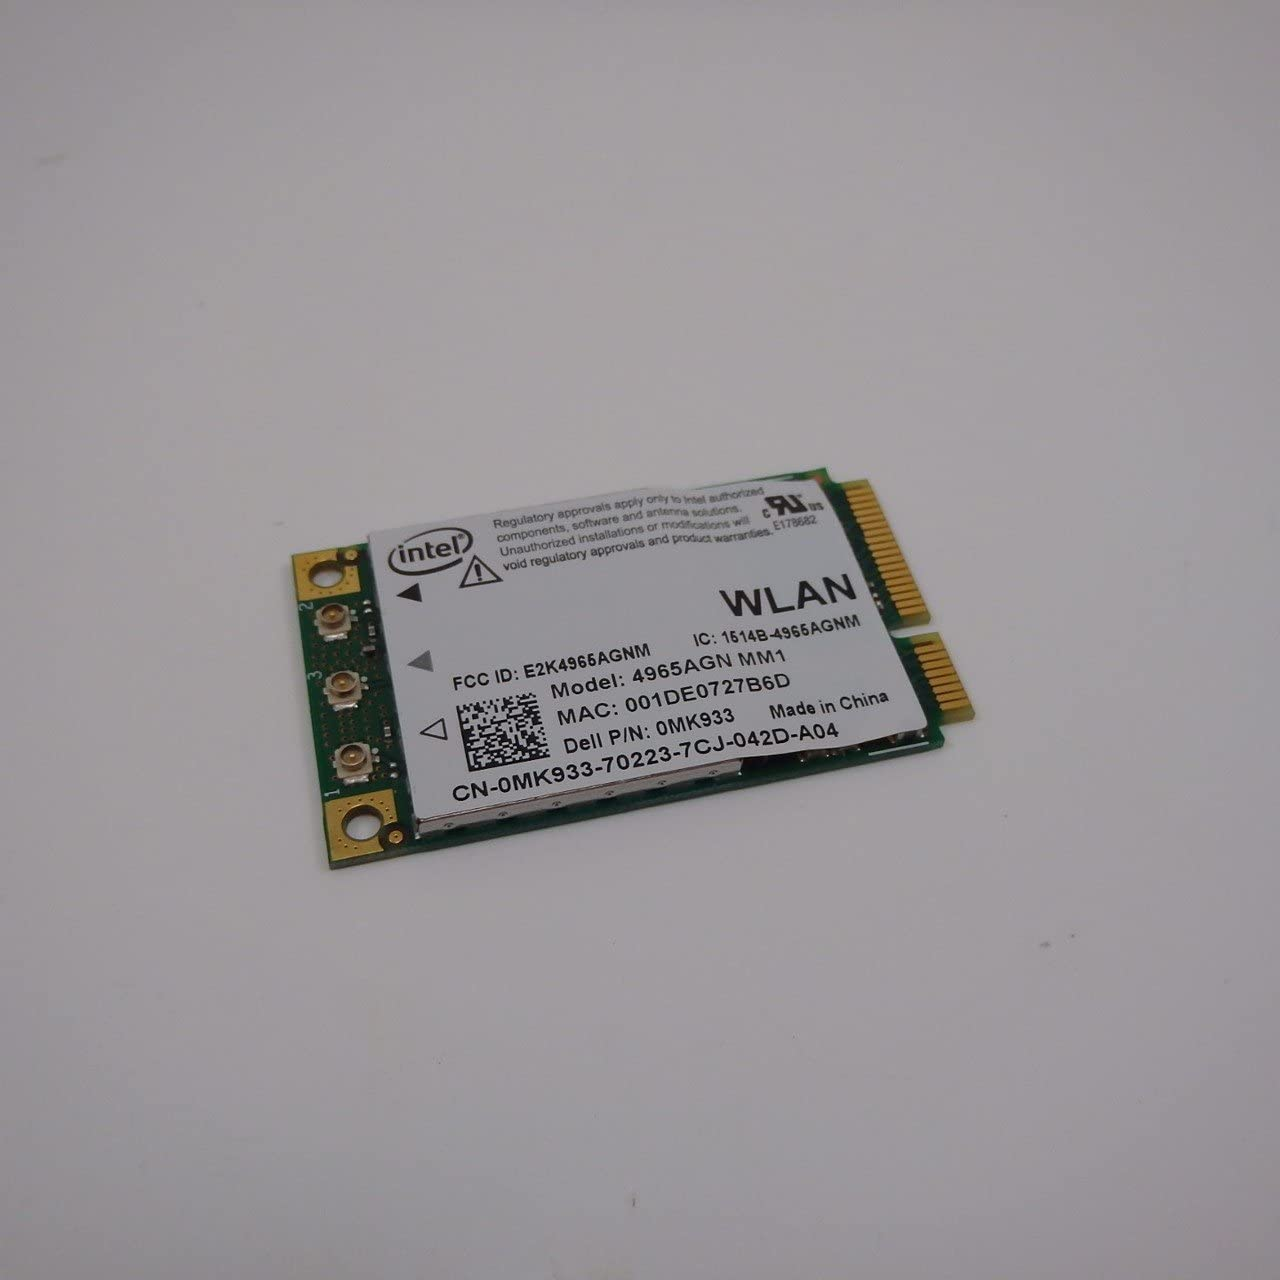 Genuine Dell XPS M1330 M1530 m1730 Latitude D620 D630 Inspiron E1705 1525 Intel MK933 4965AGN WIFI Link Dual Band PCI-E MIMO Laptop Notebook Card